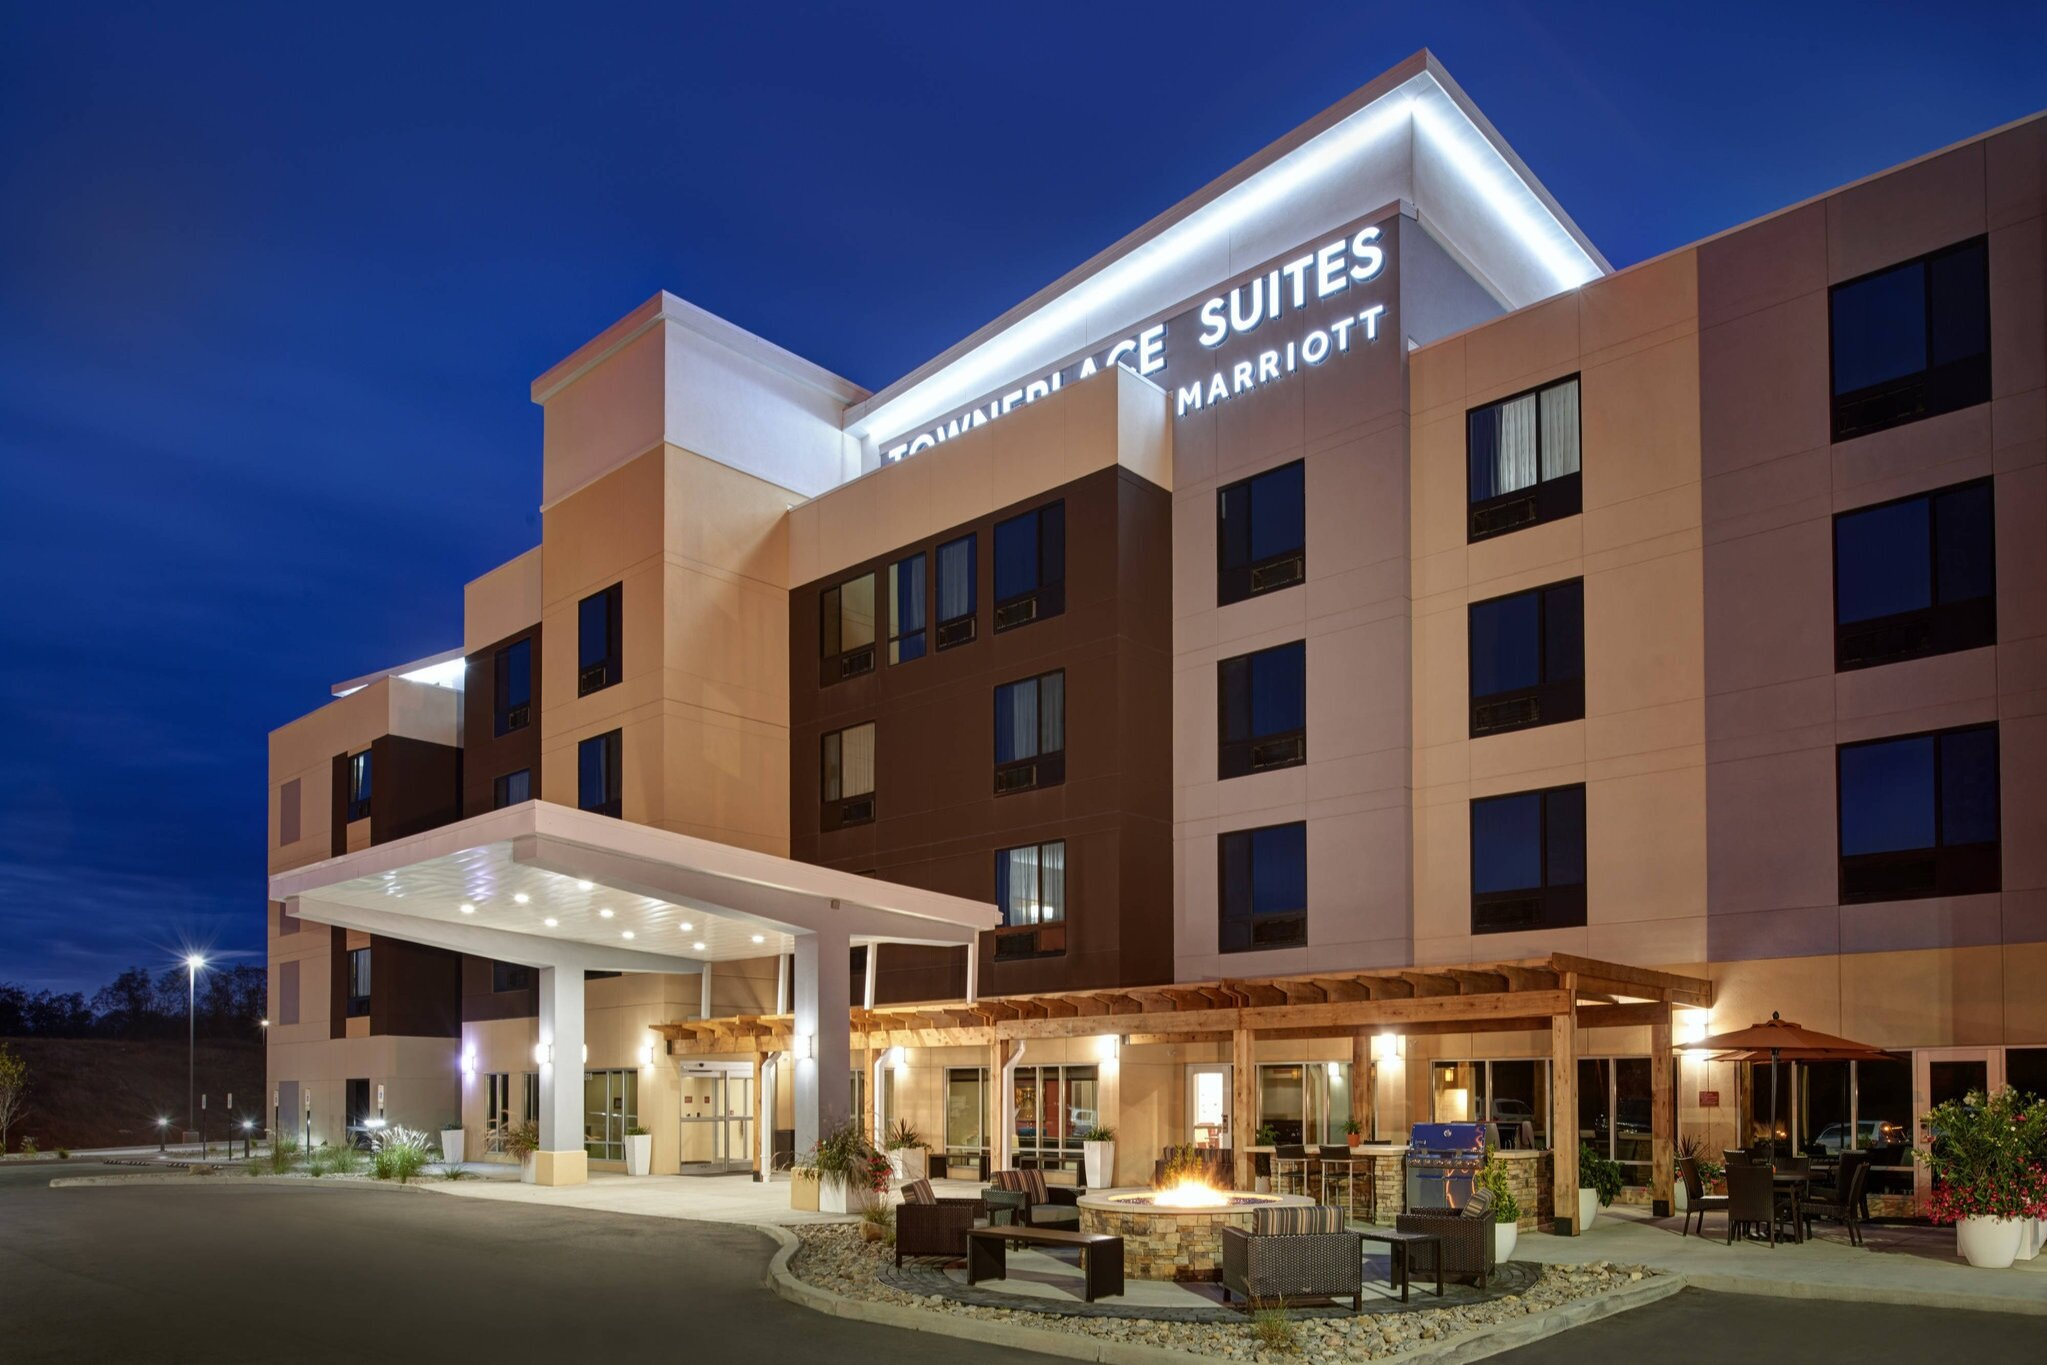 towneplace suites by marriott jackson - 8.4 miles